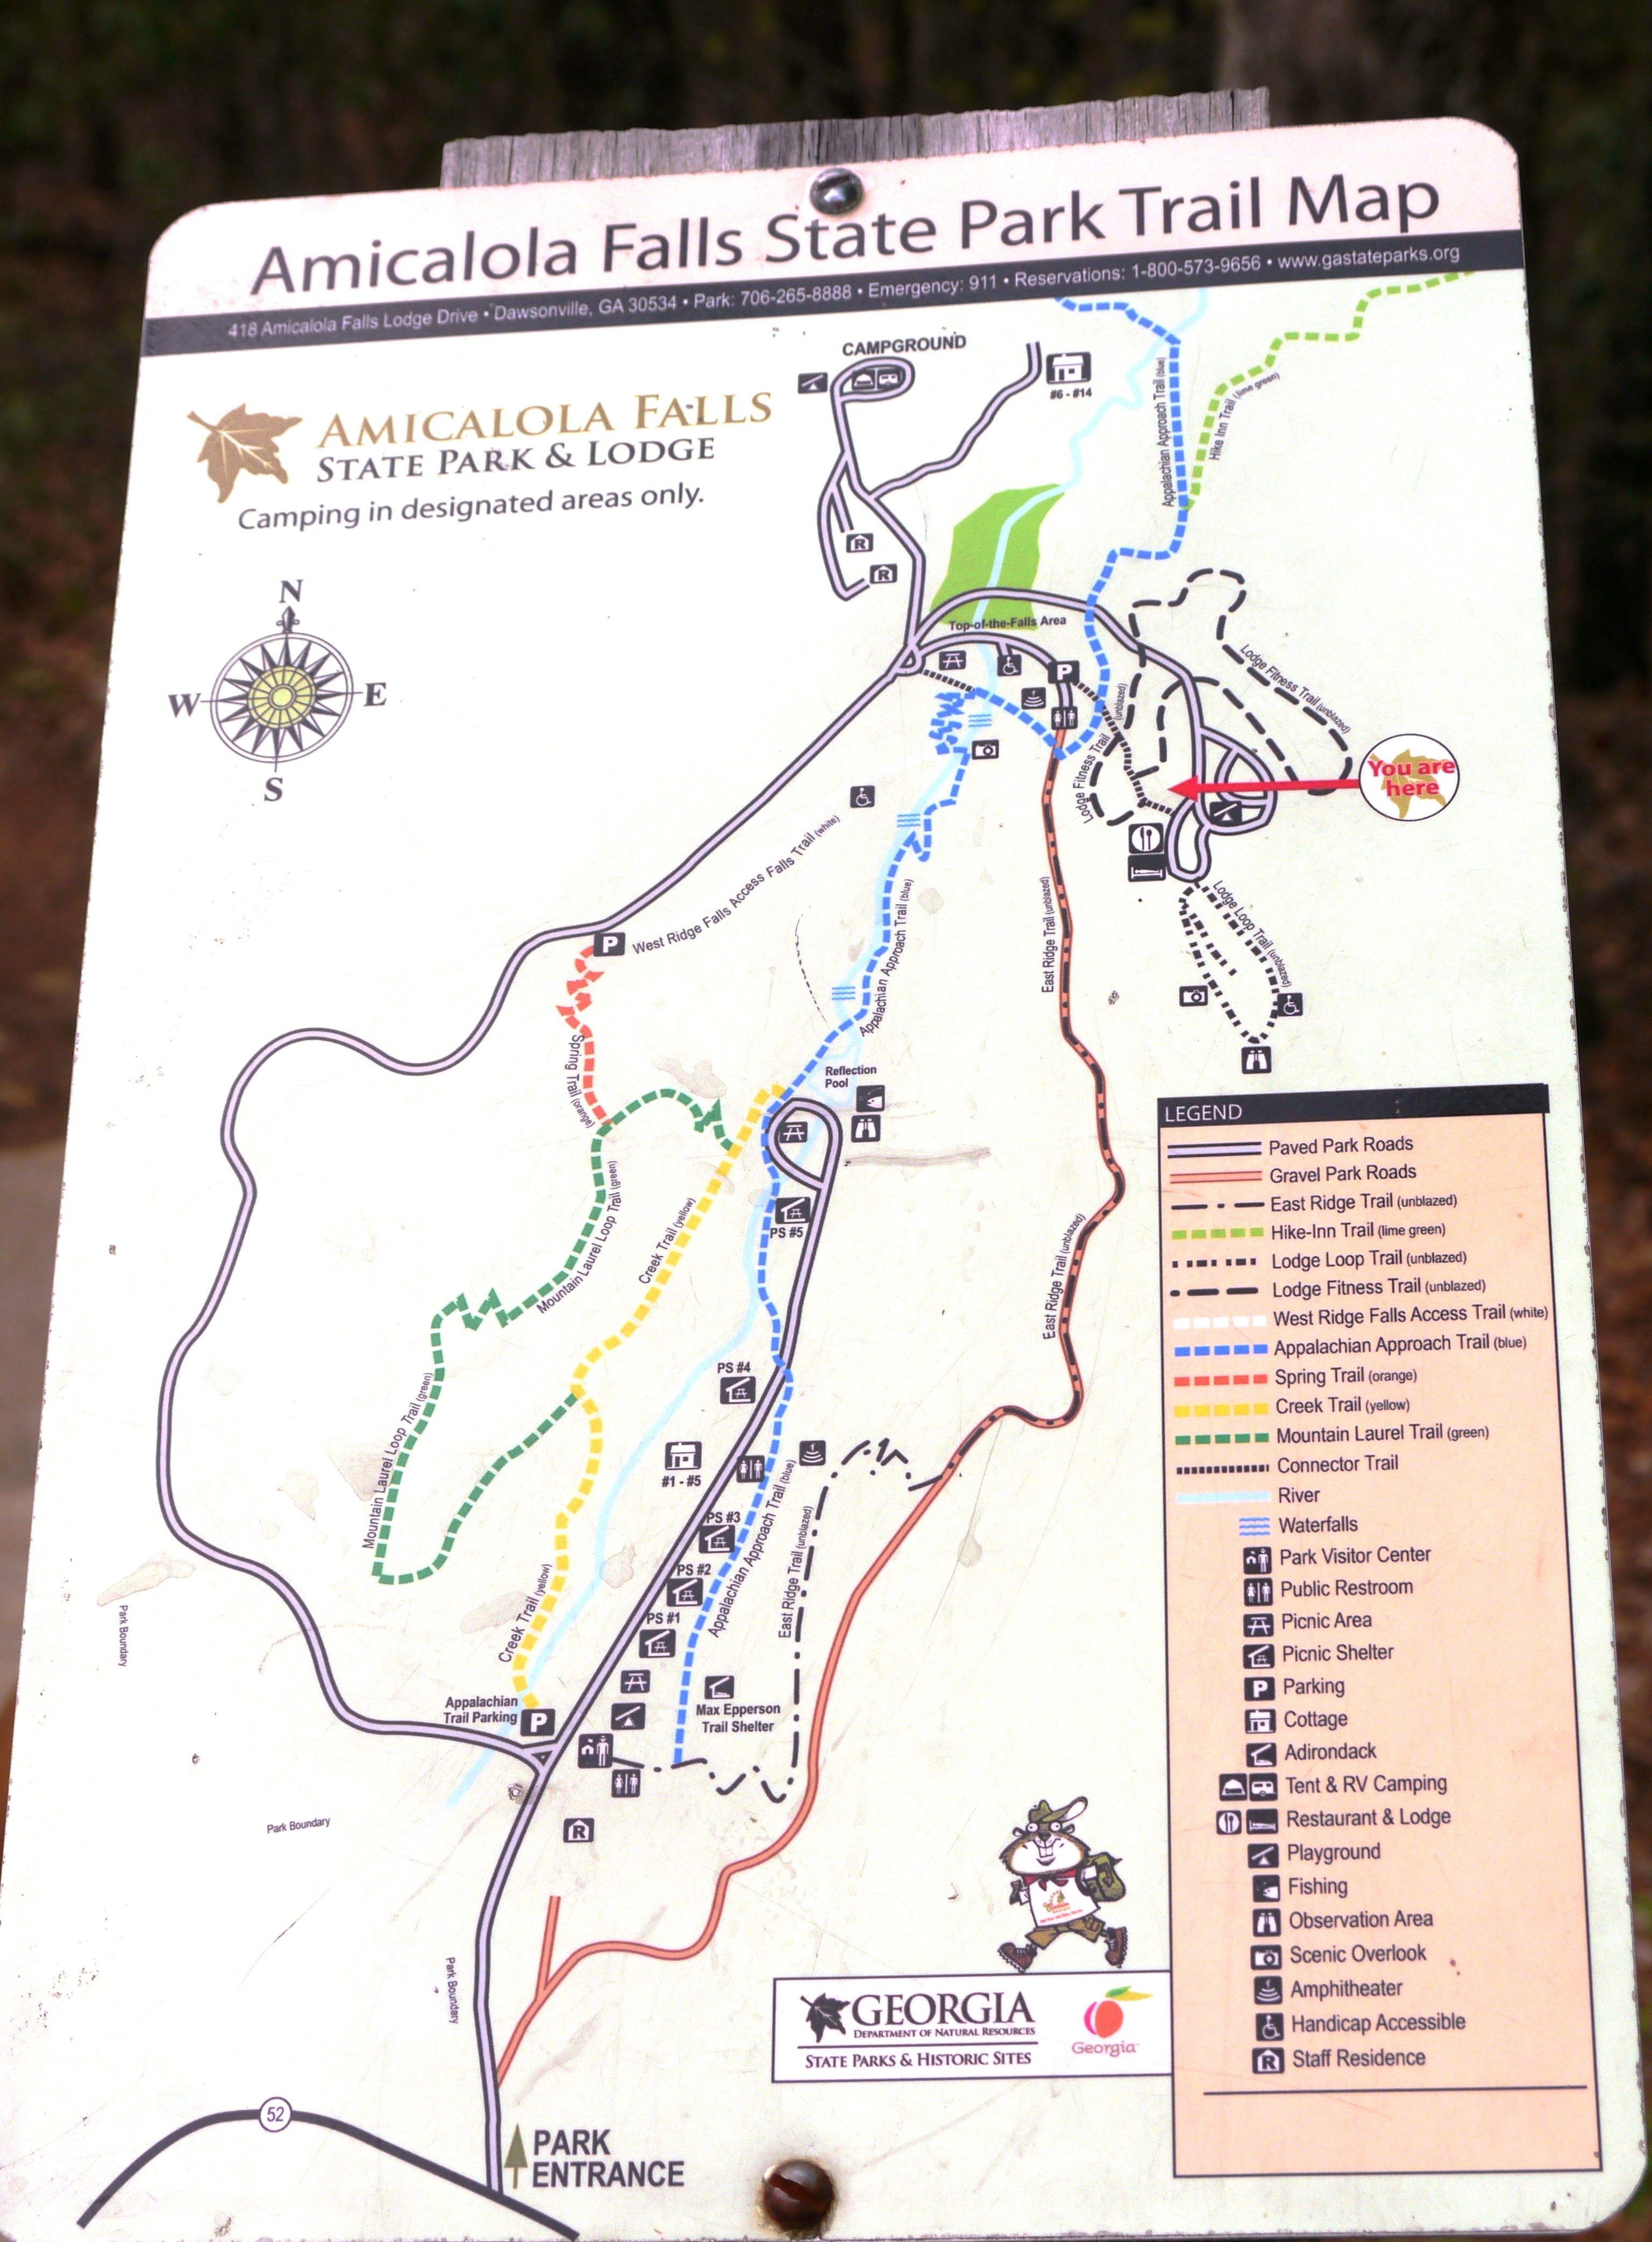 Amicalola Falls Map : amicalola, falls, Amicalola, Falls, State, Maping, Resources